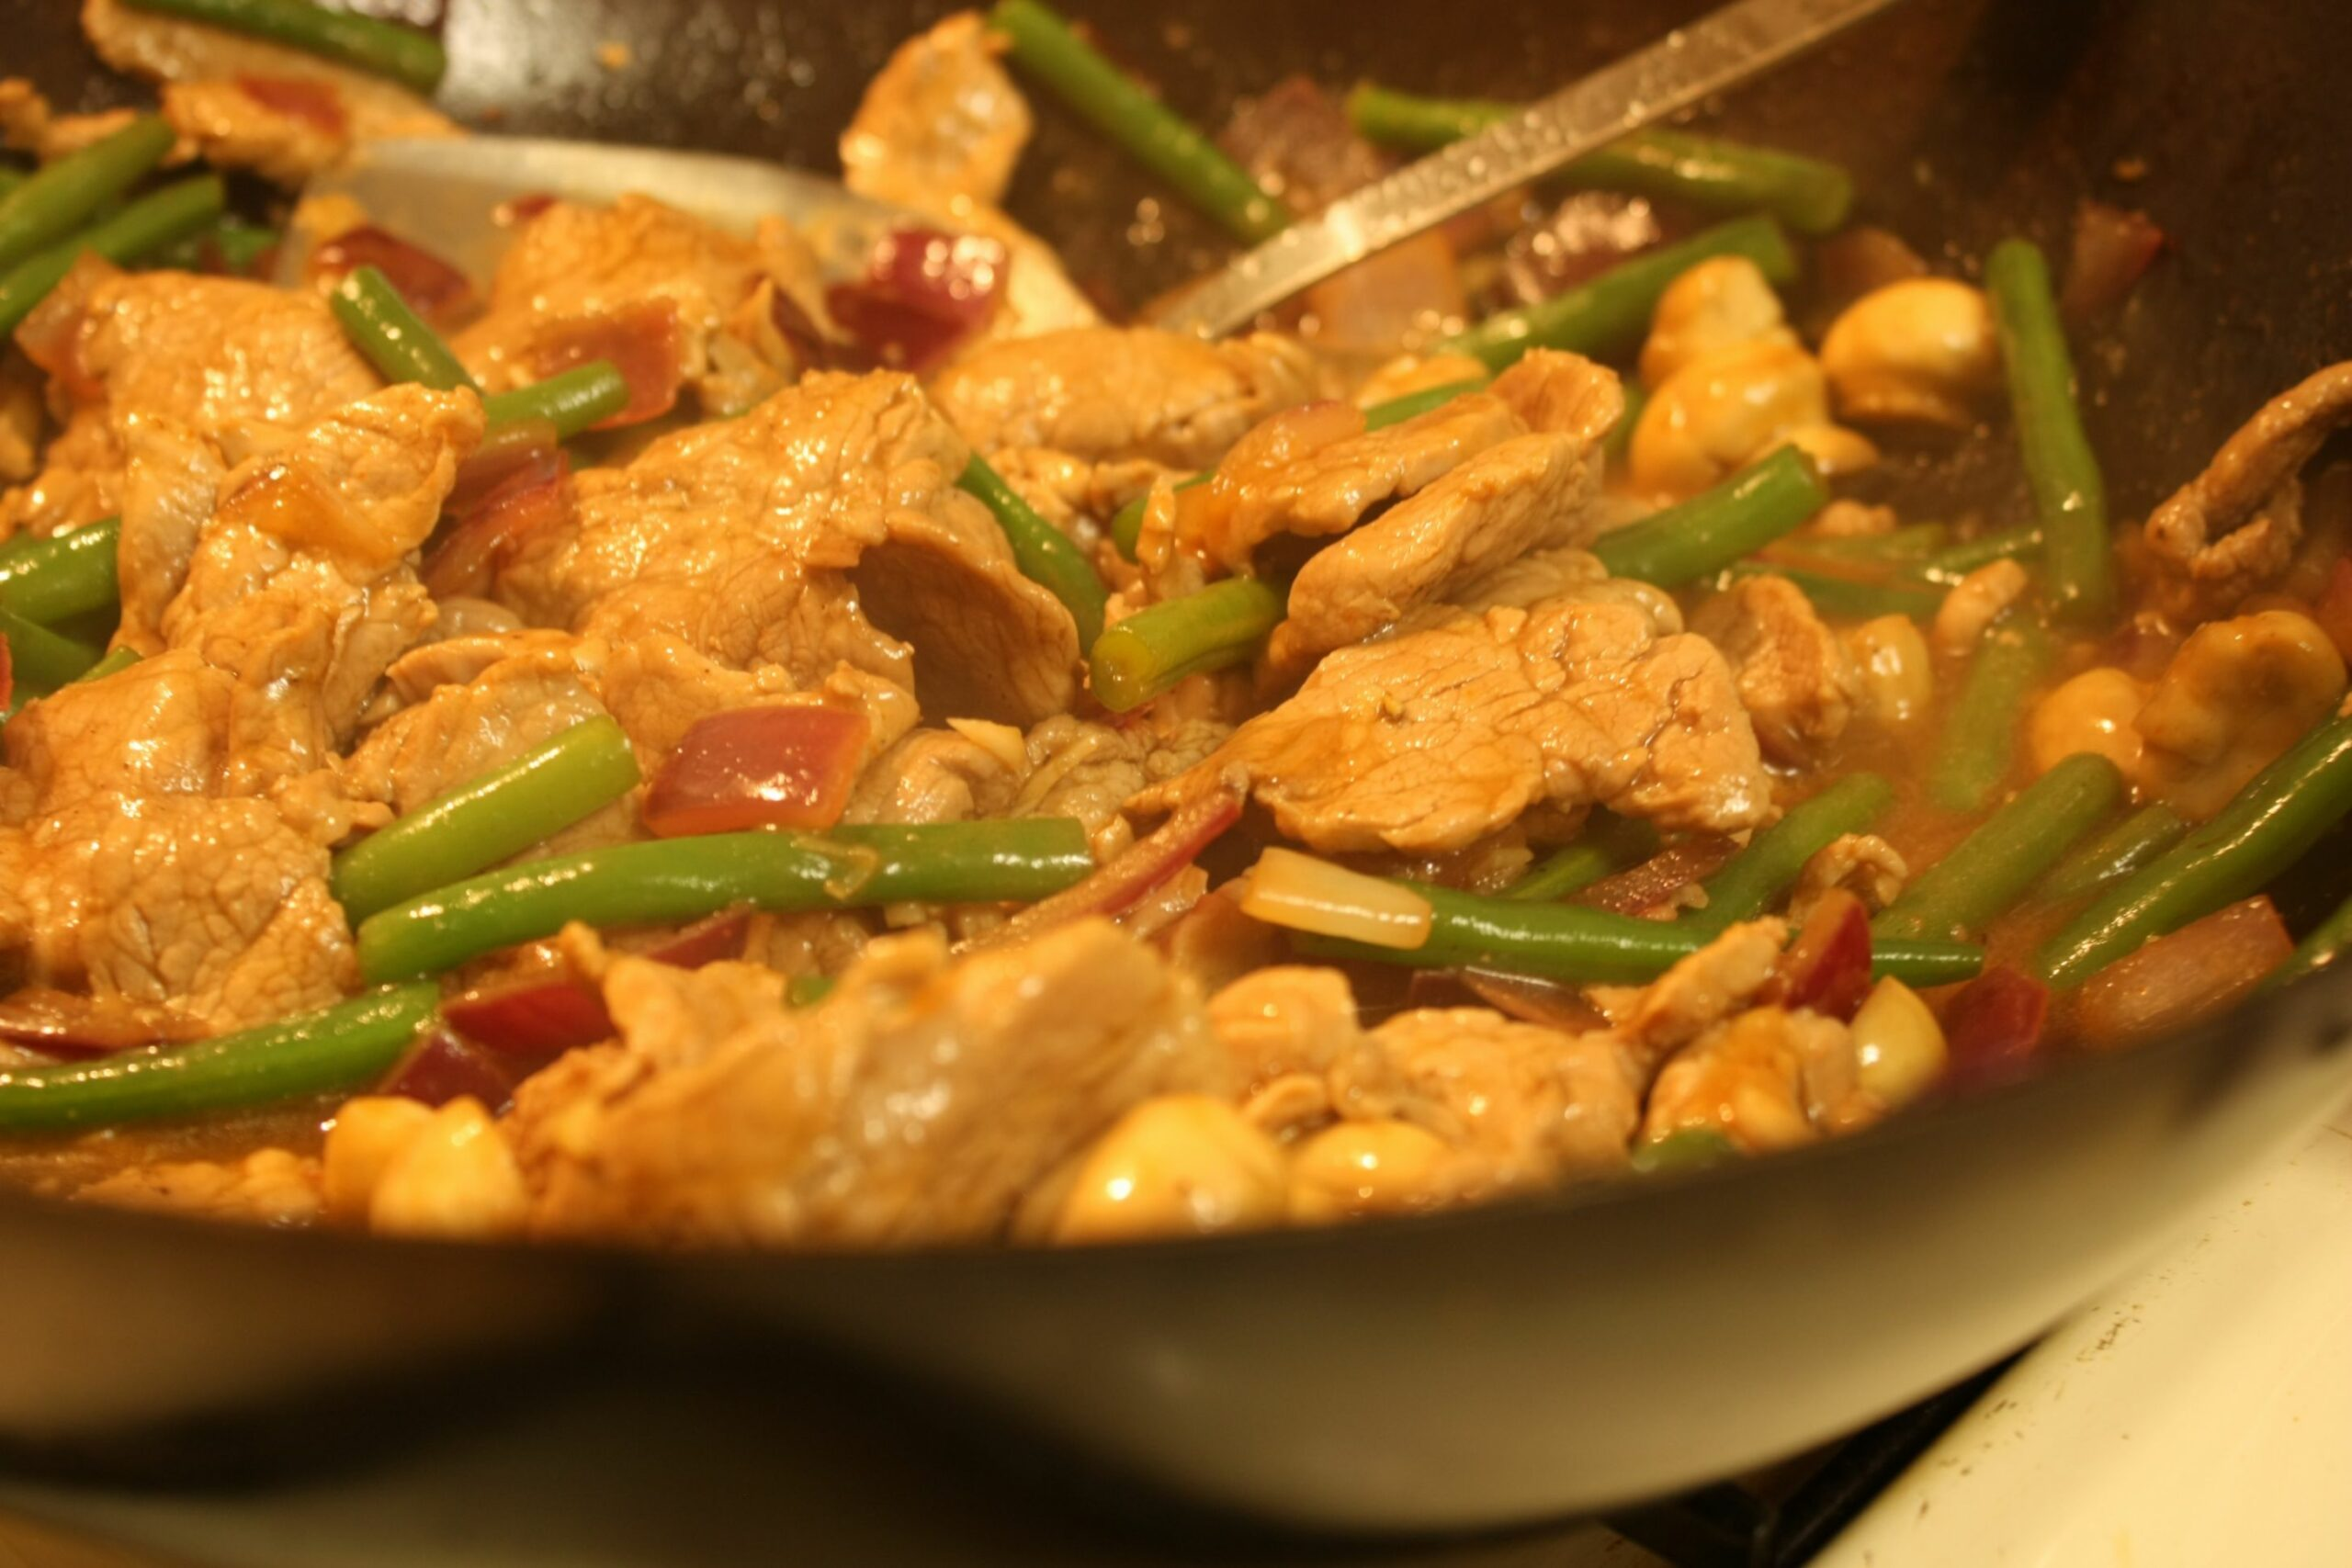 Recipe: Pork in Oyster Sauce | Food: from Dawn till dusk